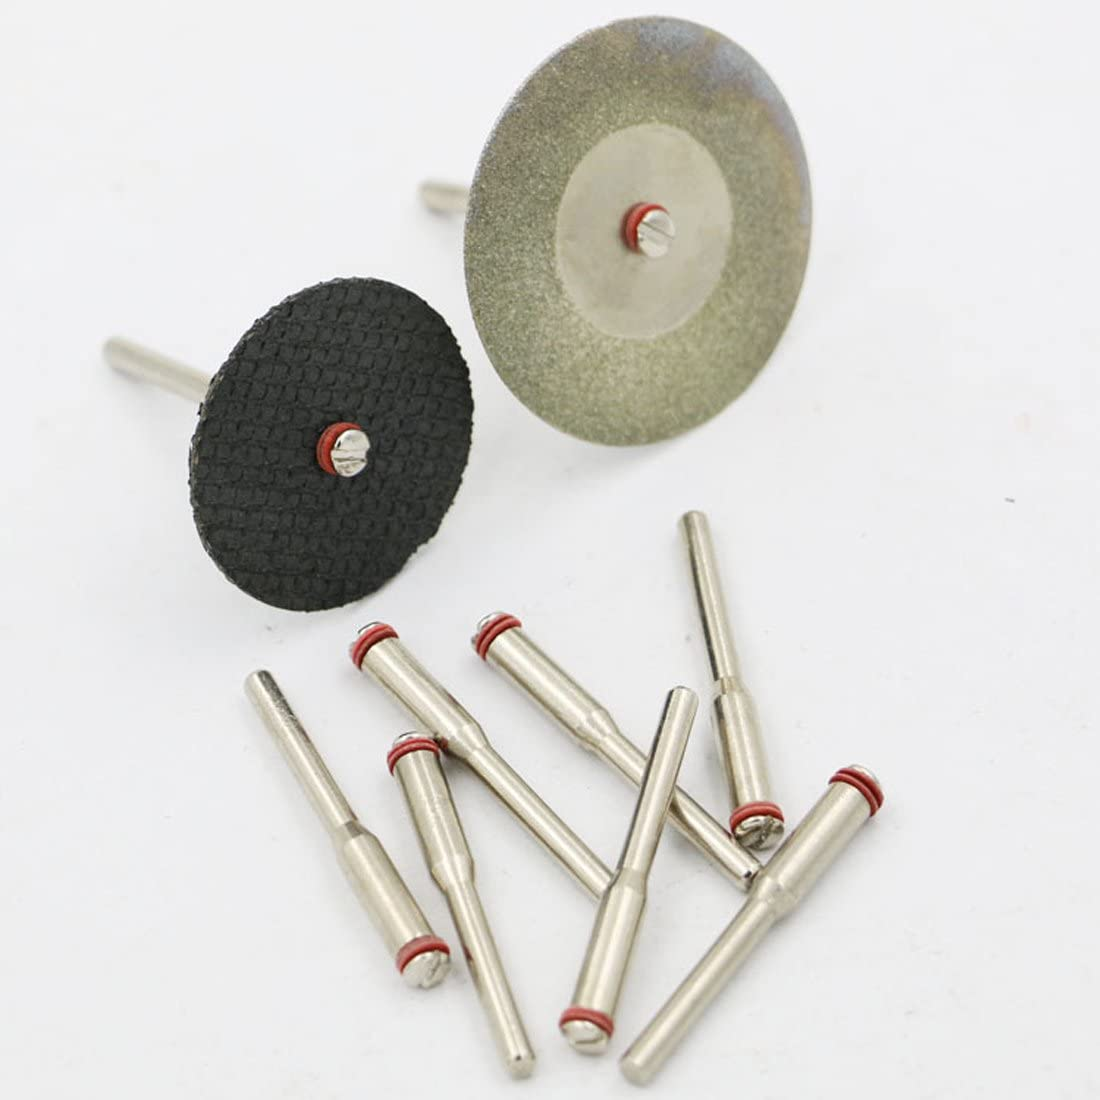 Good 10Pc 3.175mm Miniature Clamping Connecting Lever Polishing Wheel Mandrel Cutting Wheel Holder for Rotary Tool